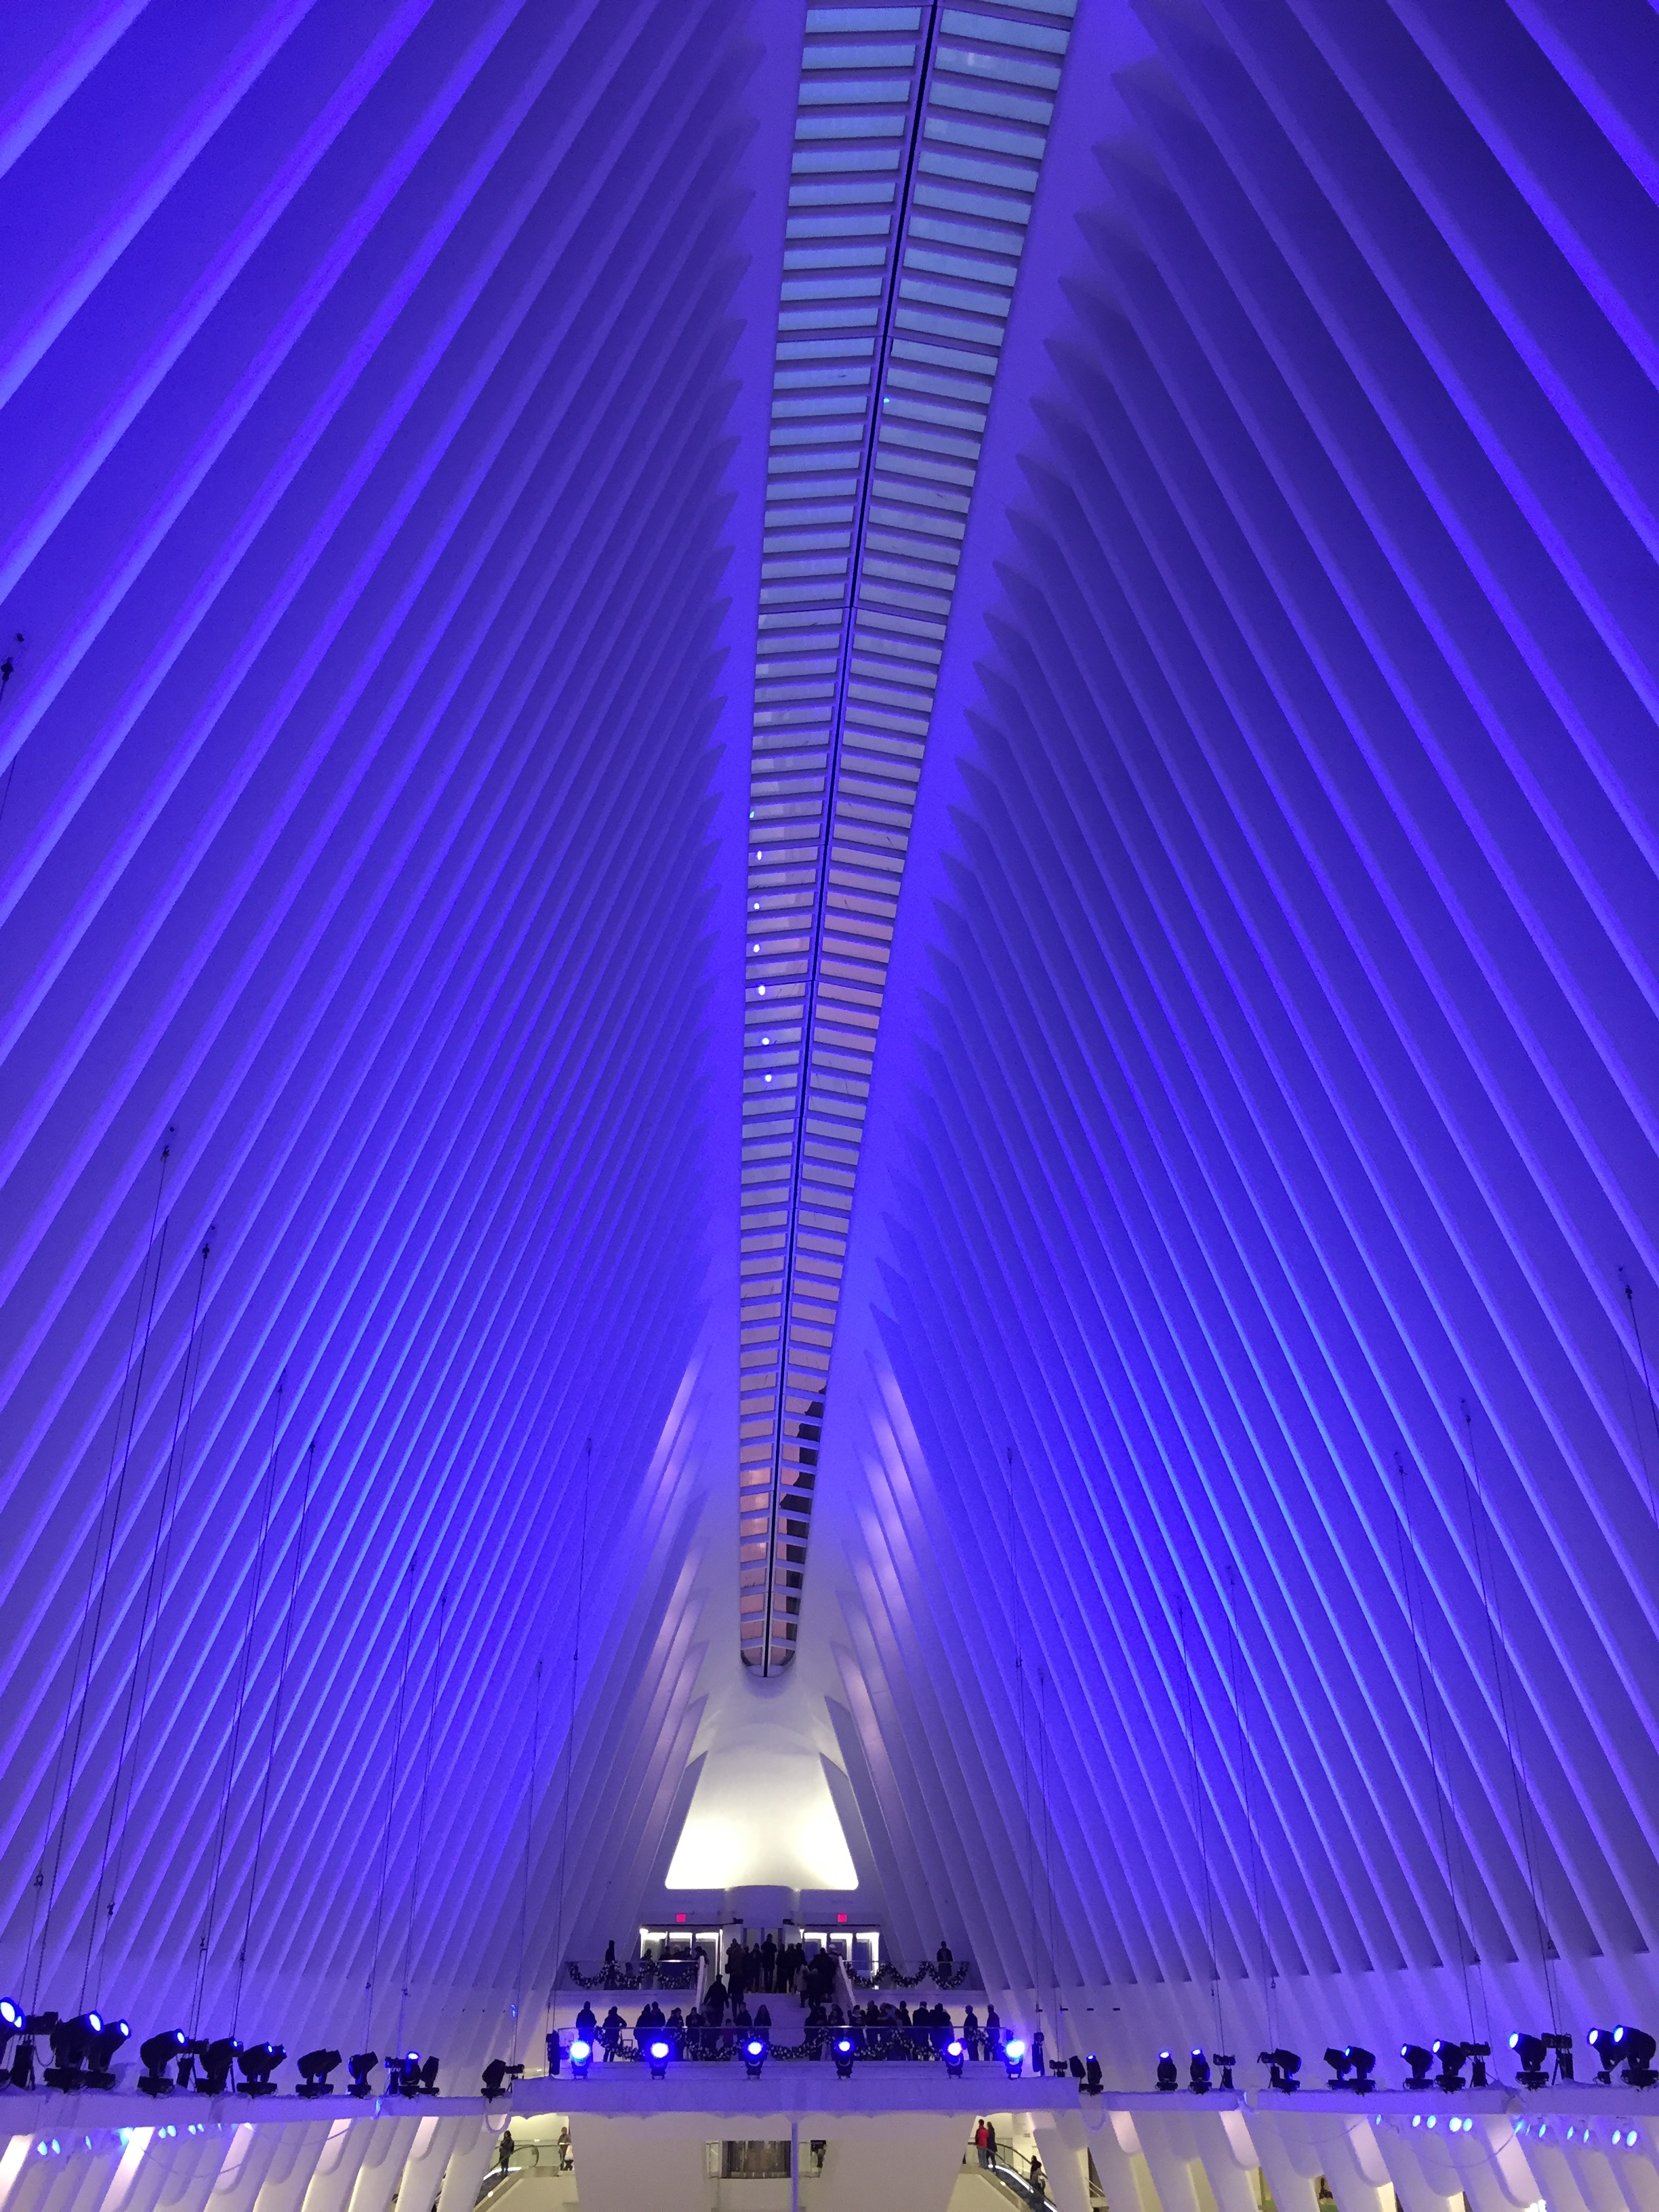 CALATRAVA. JUST BECAUSE YOU CAN, DOESN'T MEAN YOU SHOULD. RE: LED'S.